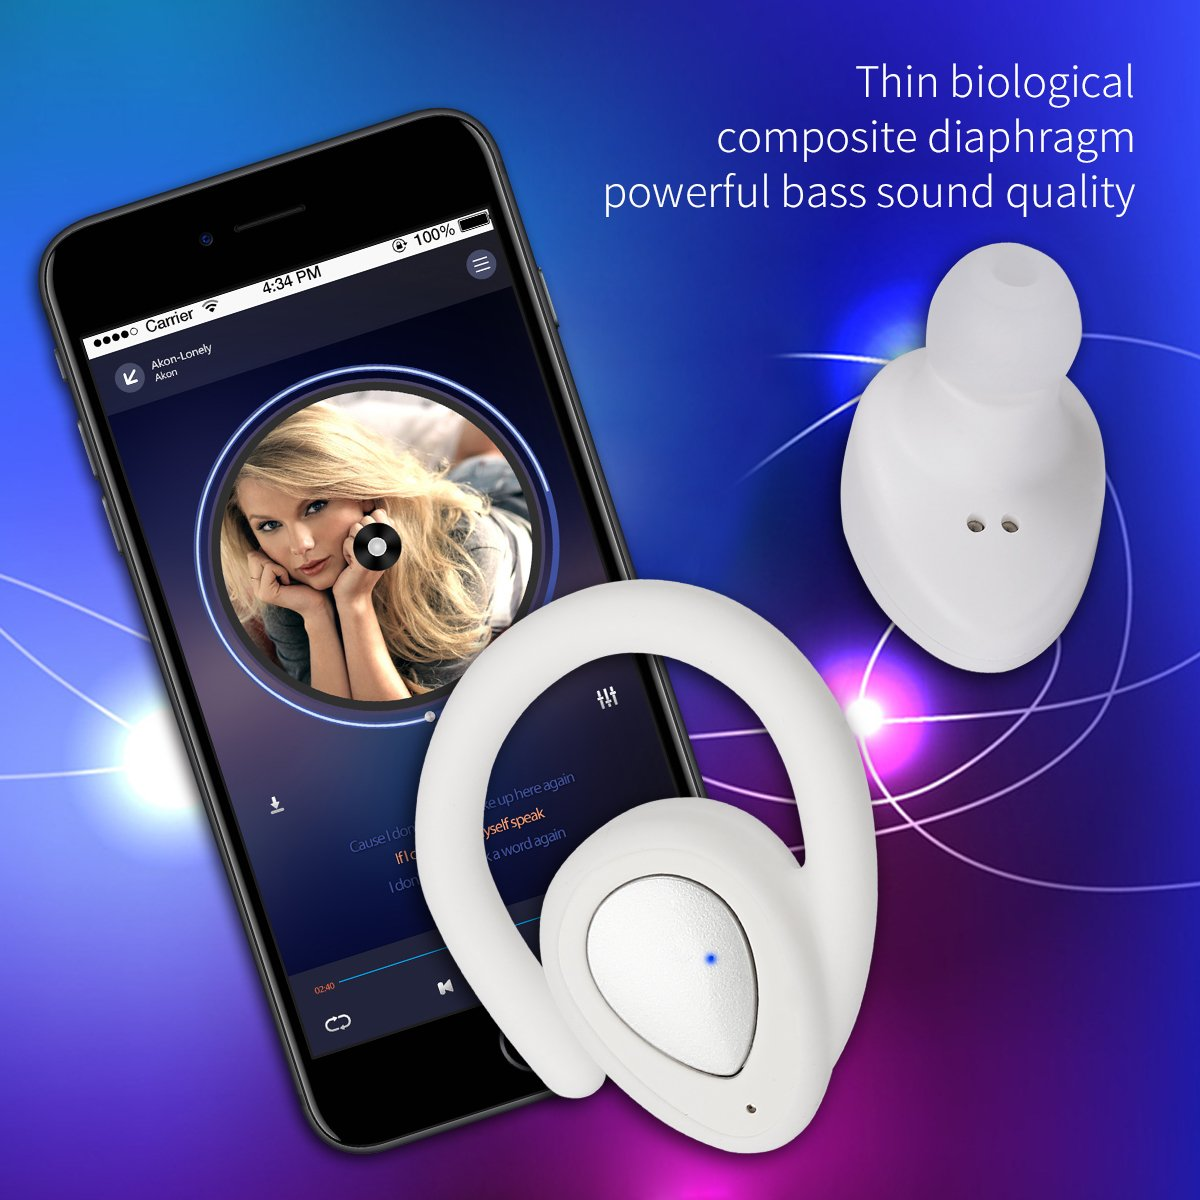 ... Wireless Headphones Sports Stereo Earbuds In-ear Noise Cancelling Earphones with Mic for iPhone And All Phone with Bluetooth device: Toys & Games